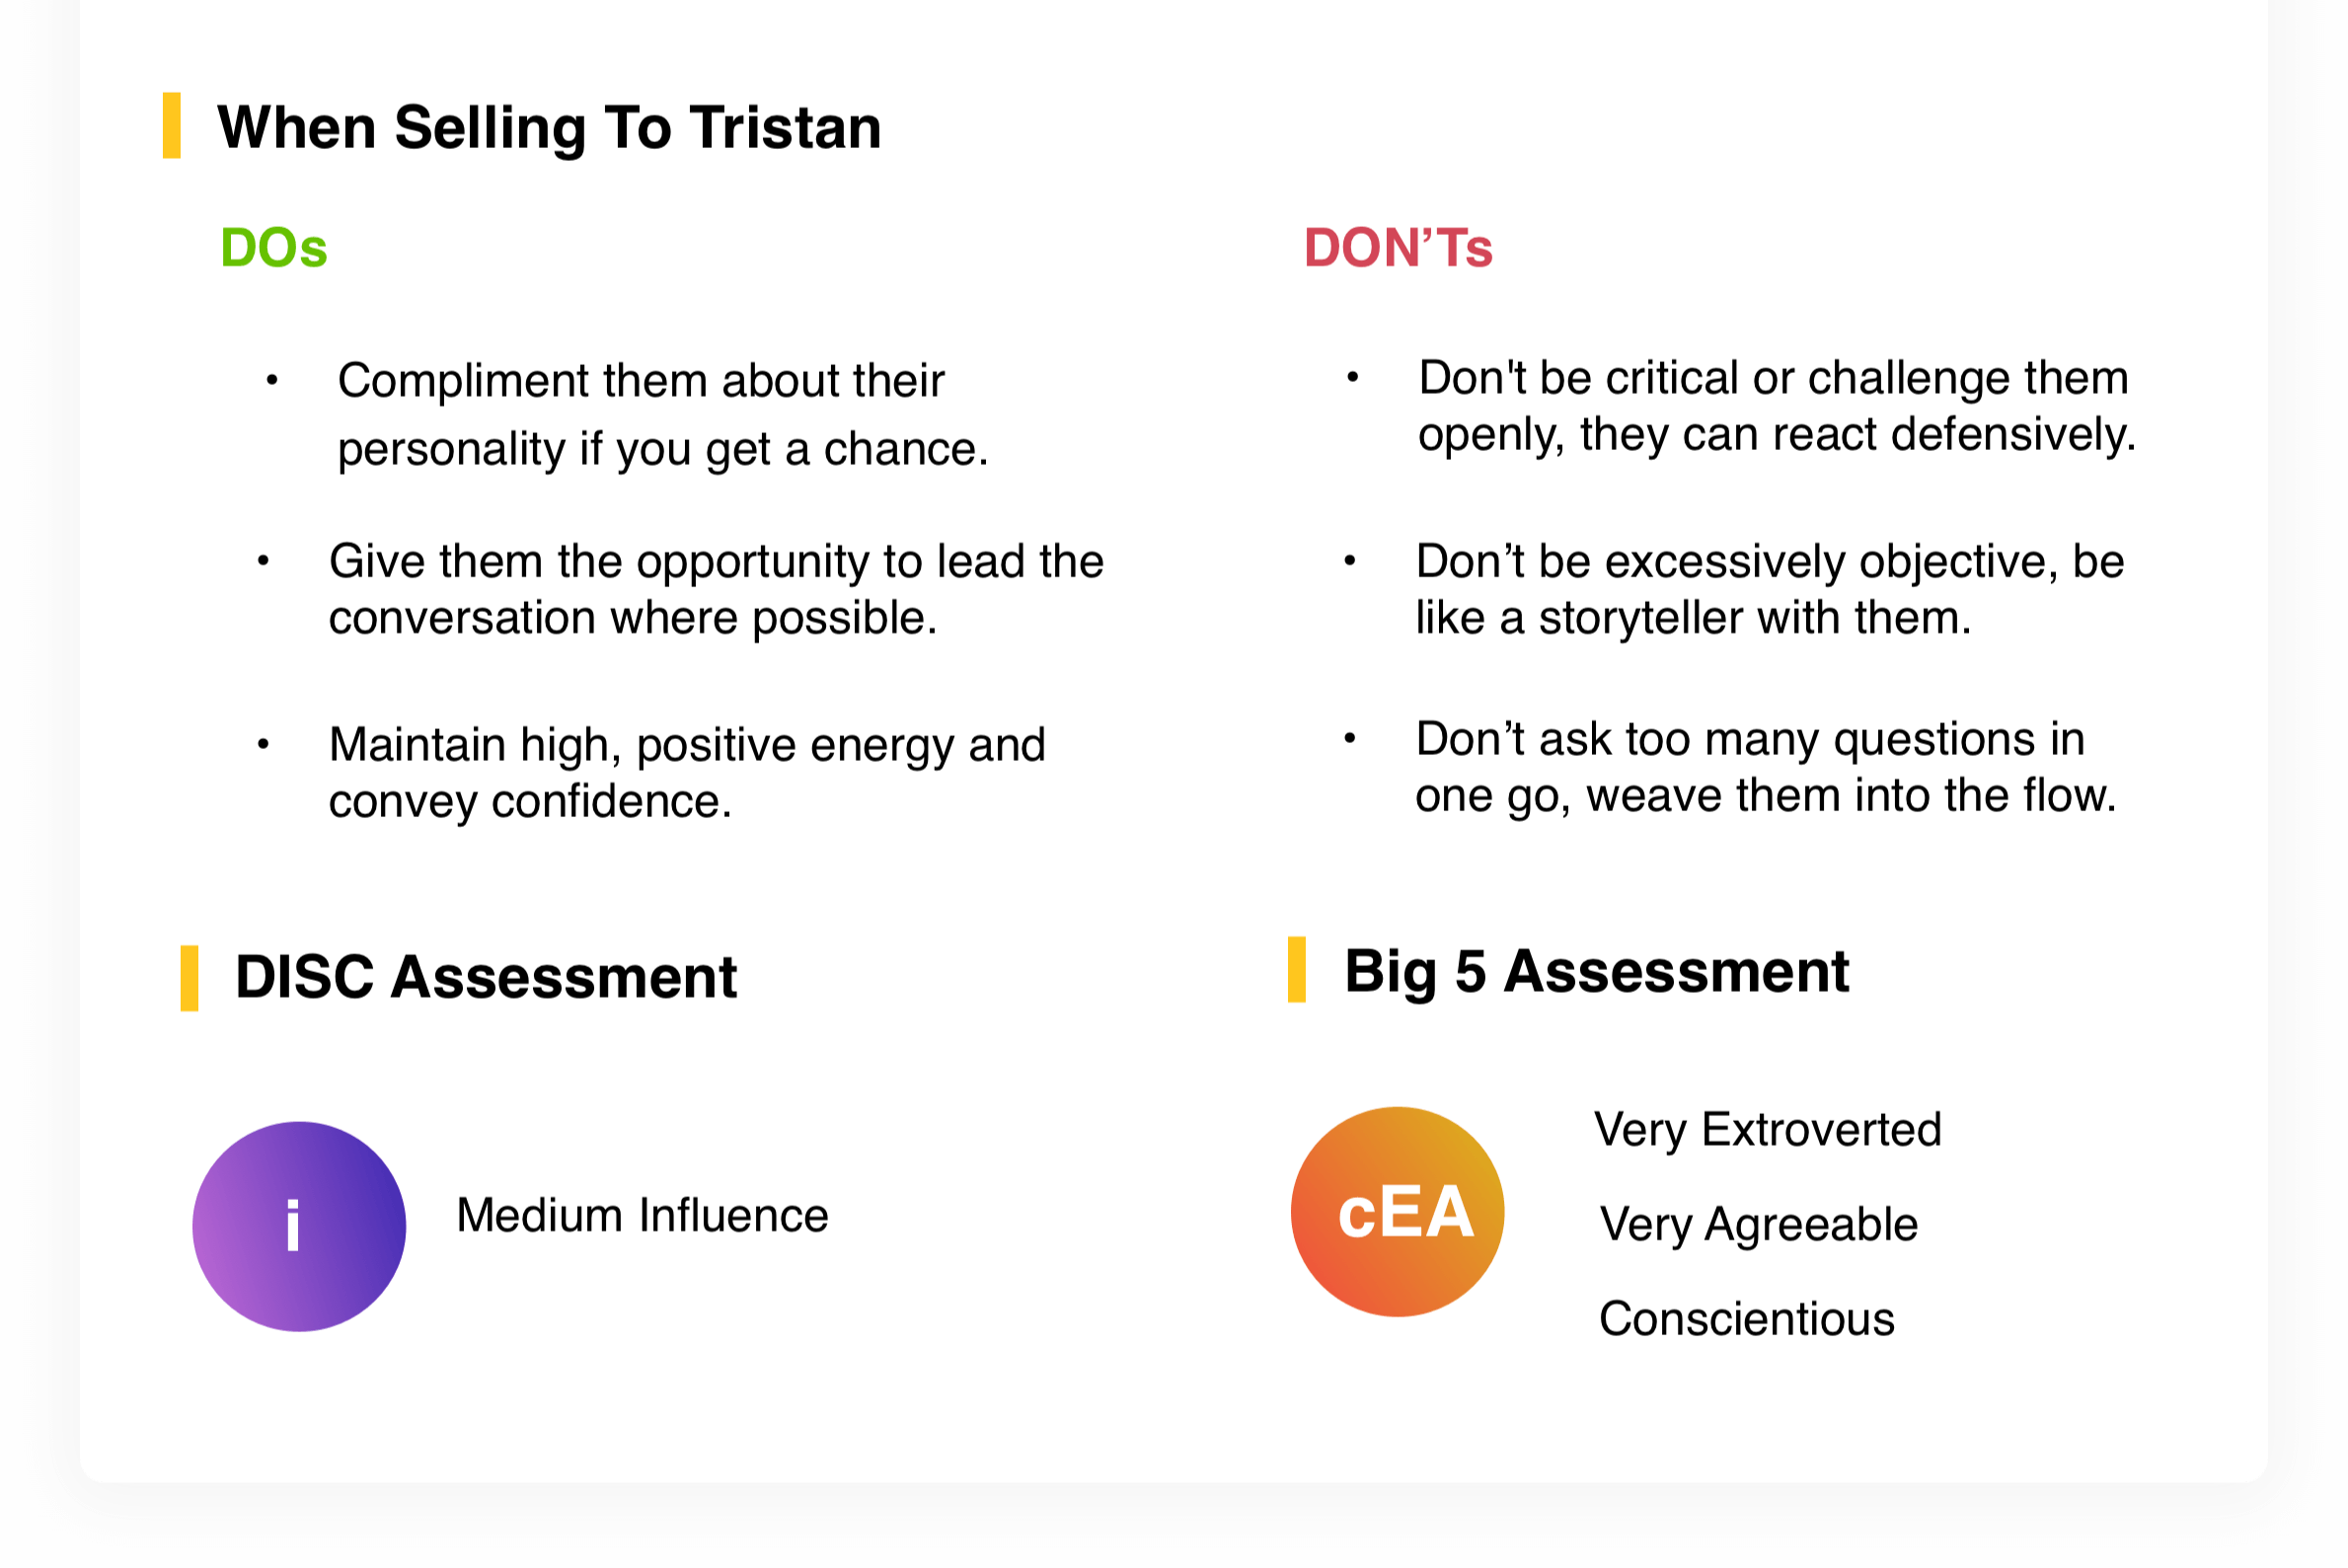 When Selling To Tristan